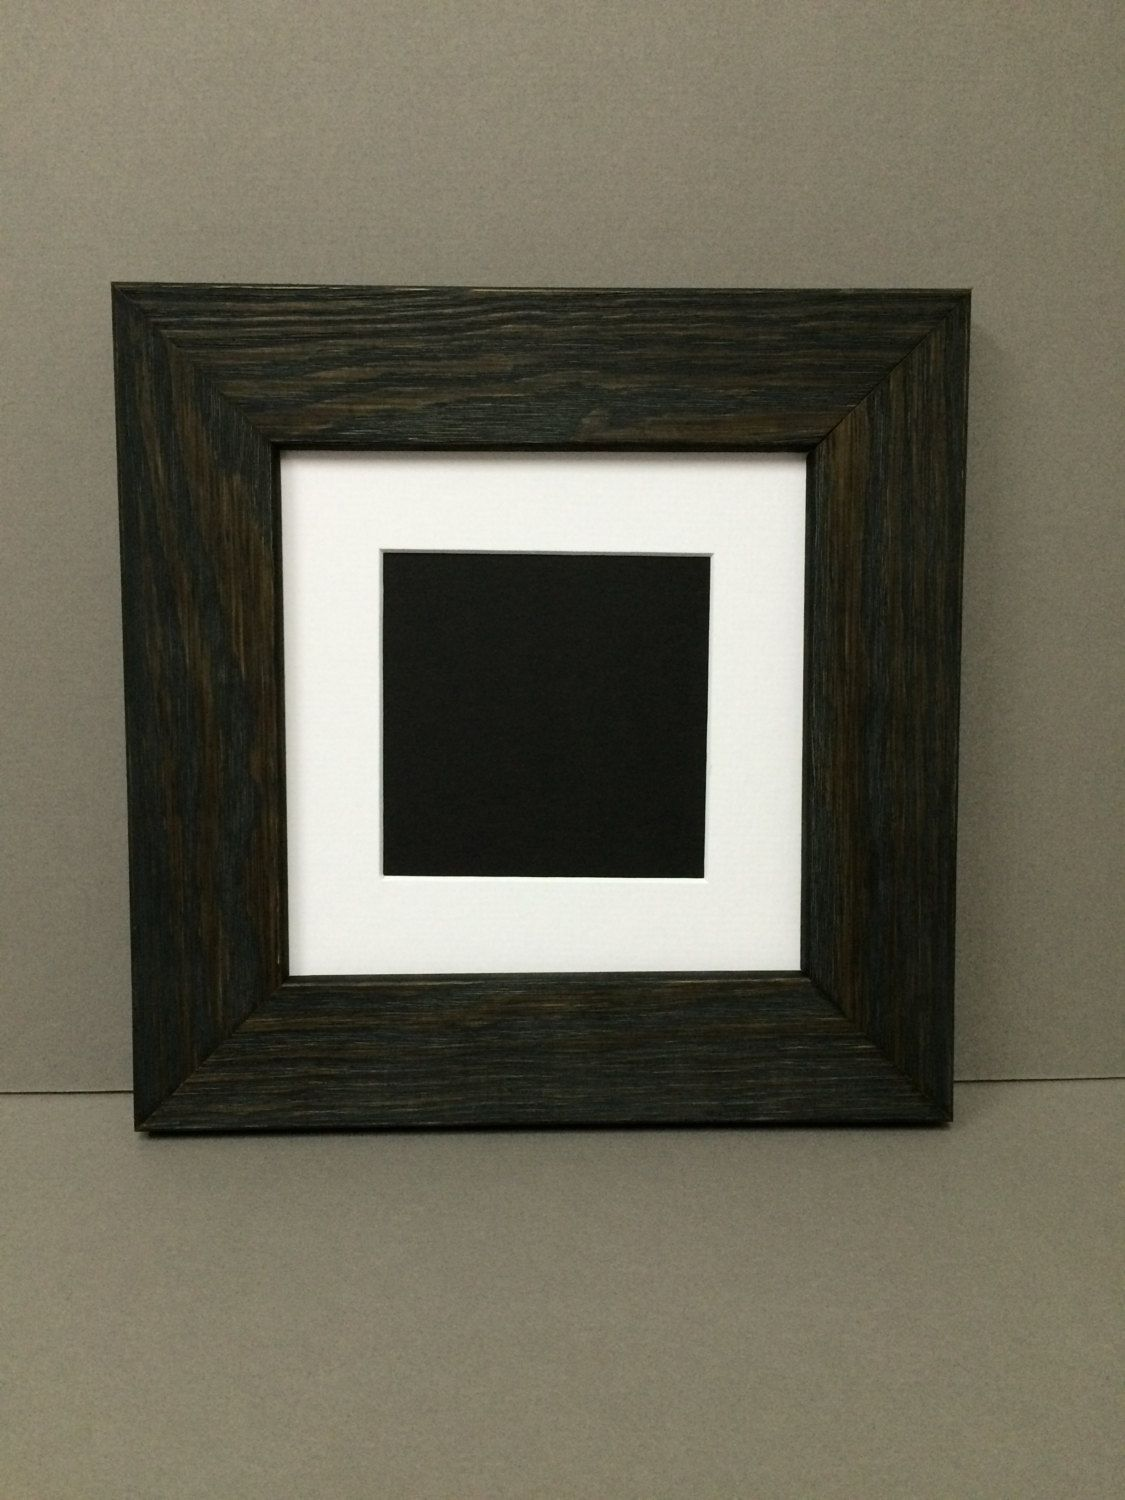 10x10 square rustic black black picture frame with white mat for 10x10 square rustic black black picture frame with white mat for 6x6 picture by bux1picturematting on jeuxipadfo Image collections